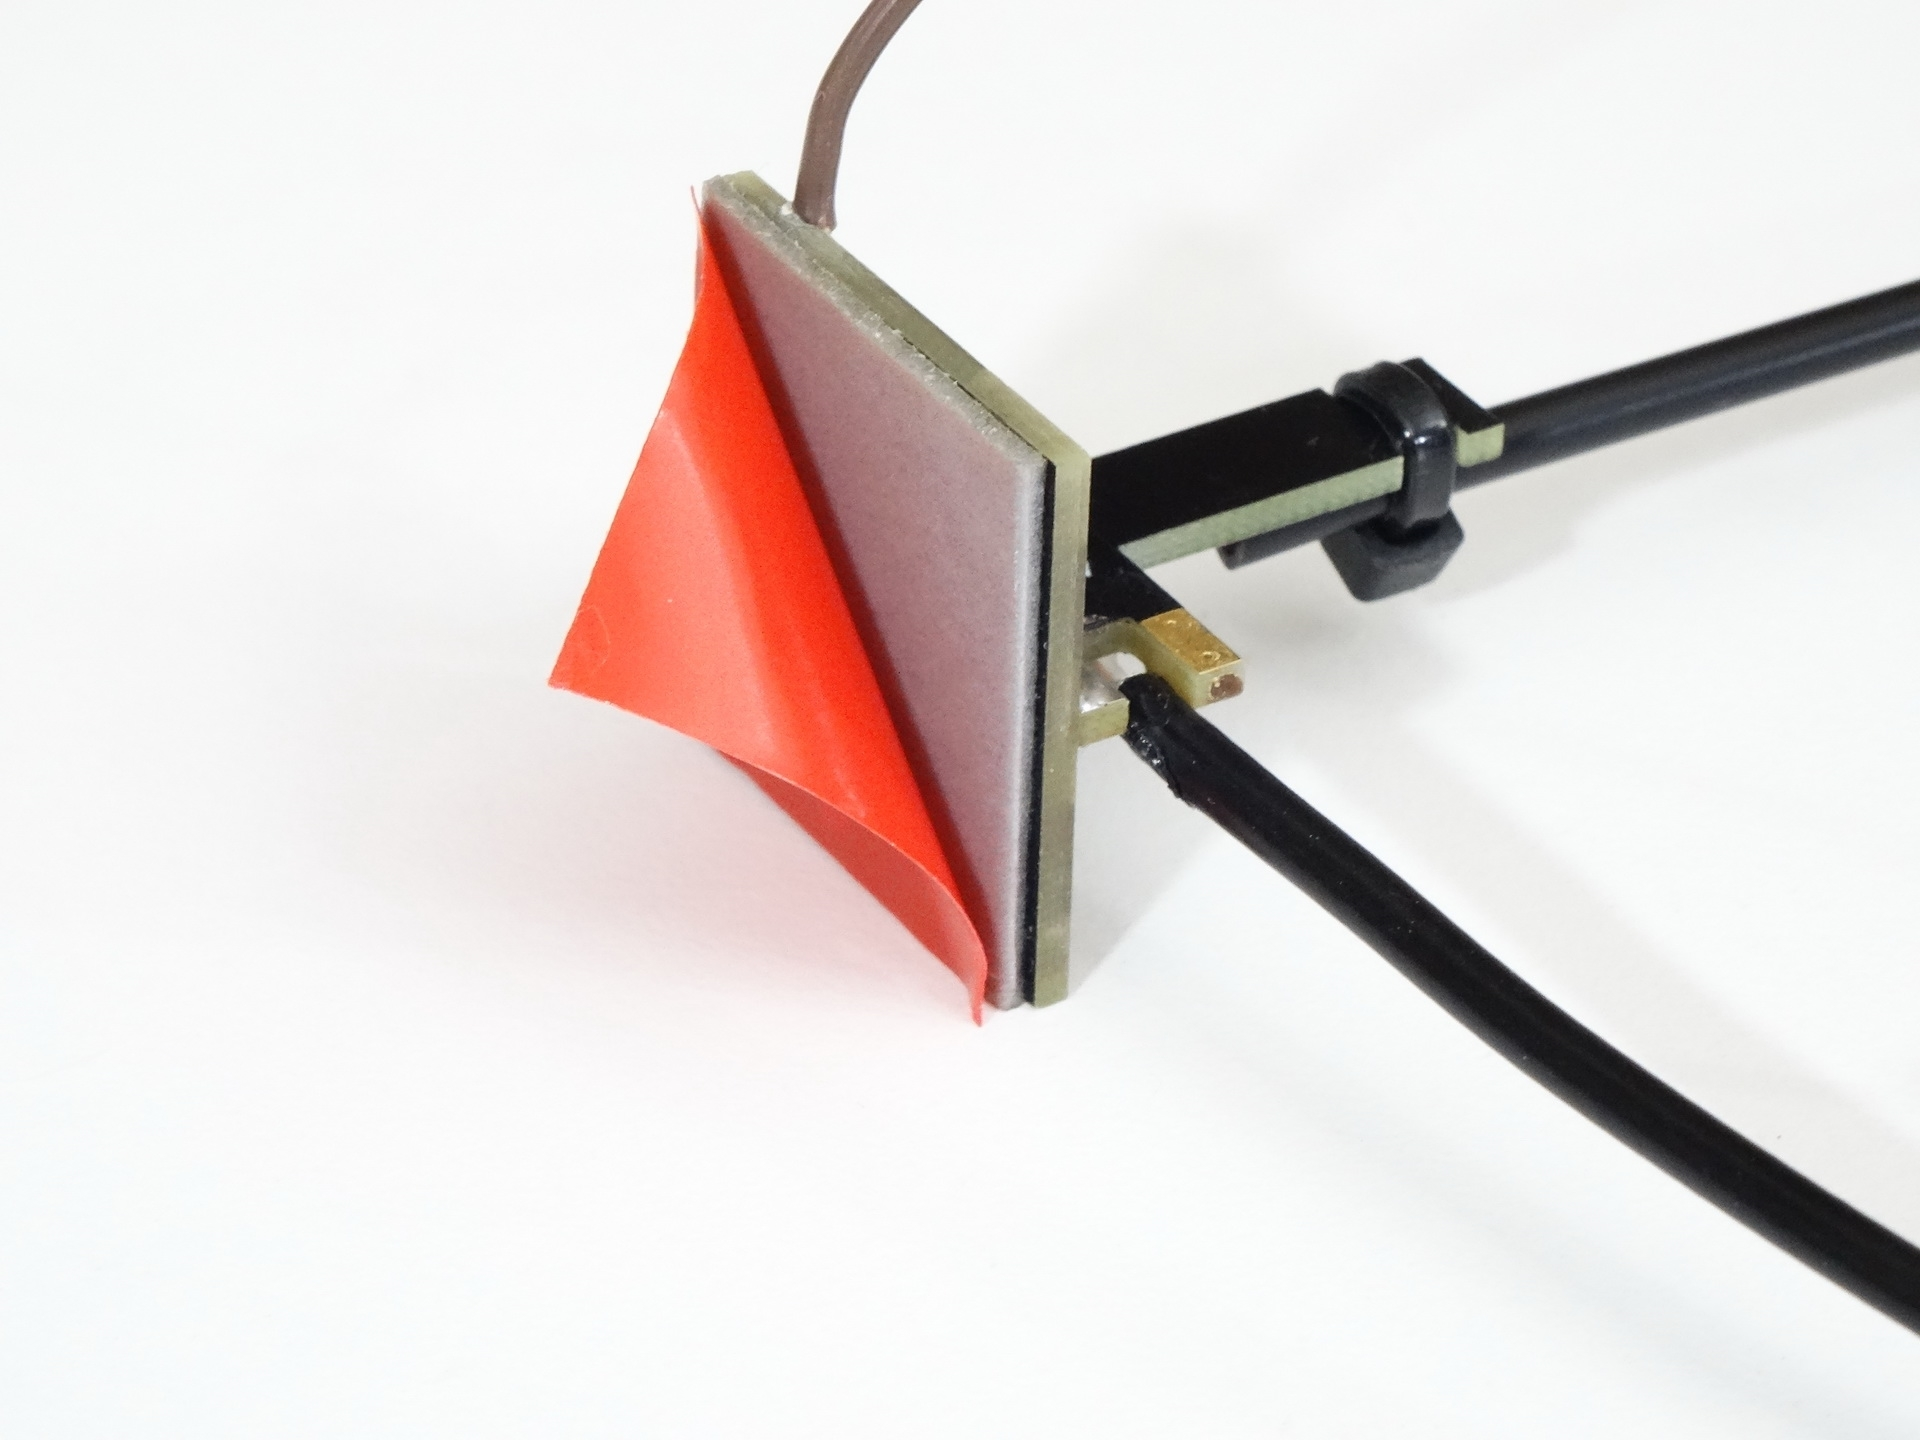 Picture of Dragon Link Receiver Antenna - 6 Inch ( 15 CM ) Copter Mount With MMCX Connector